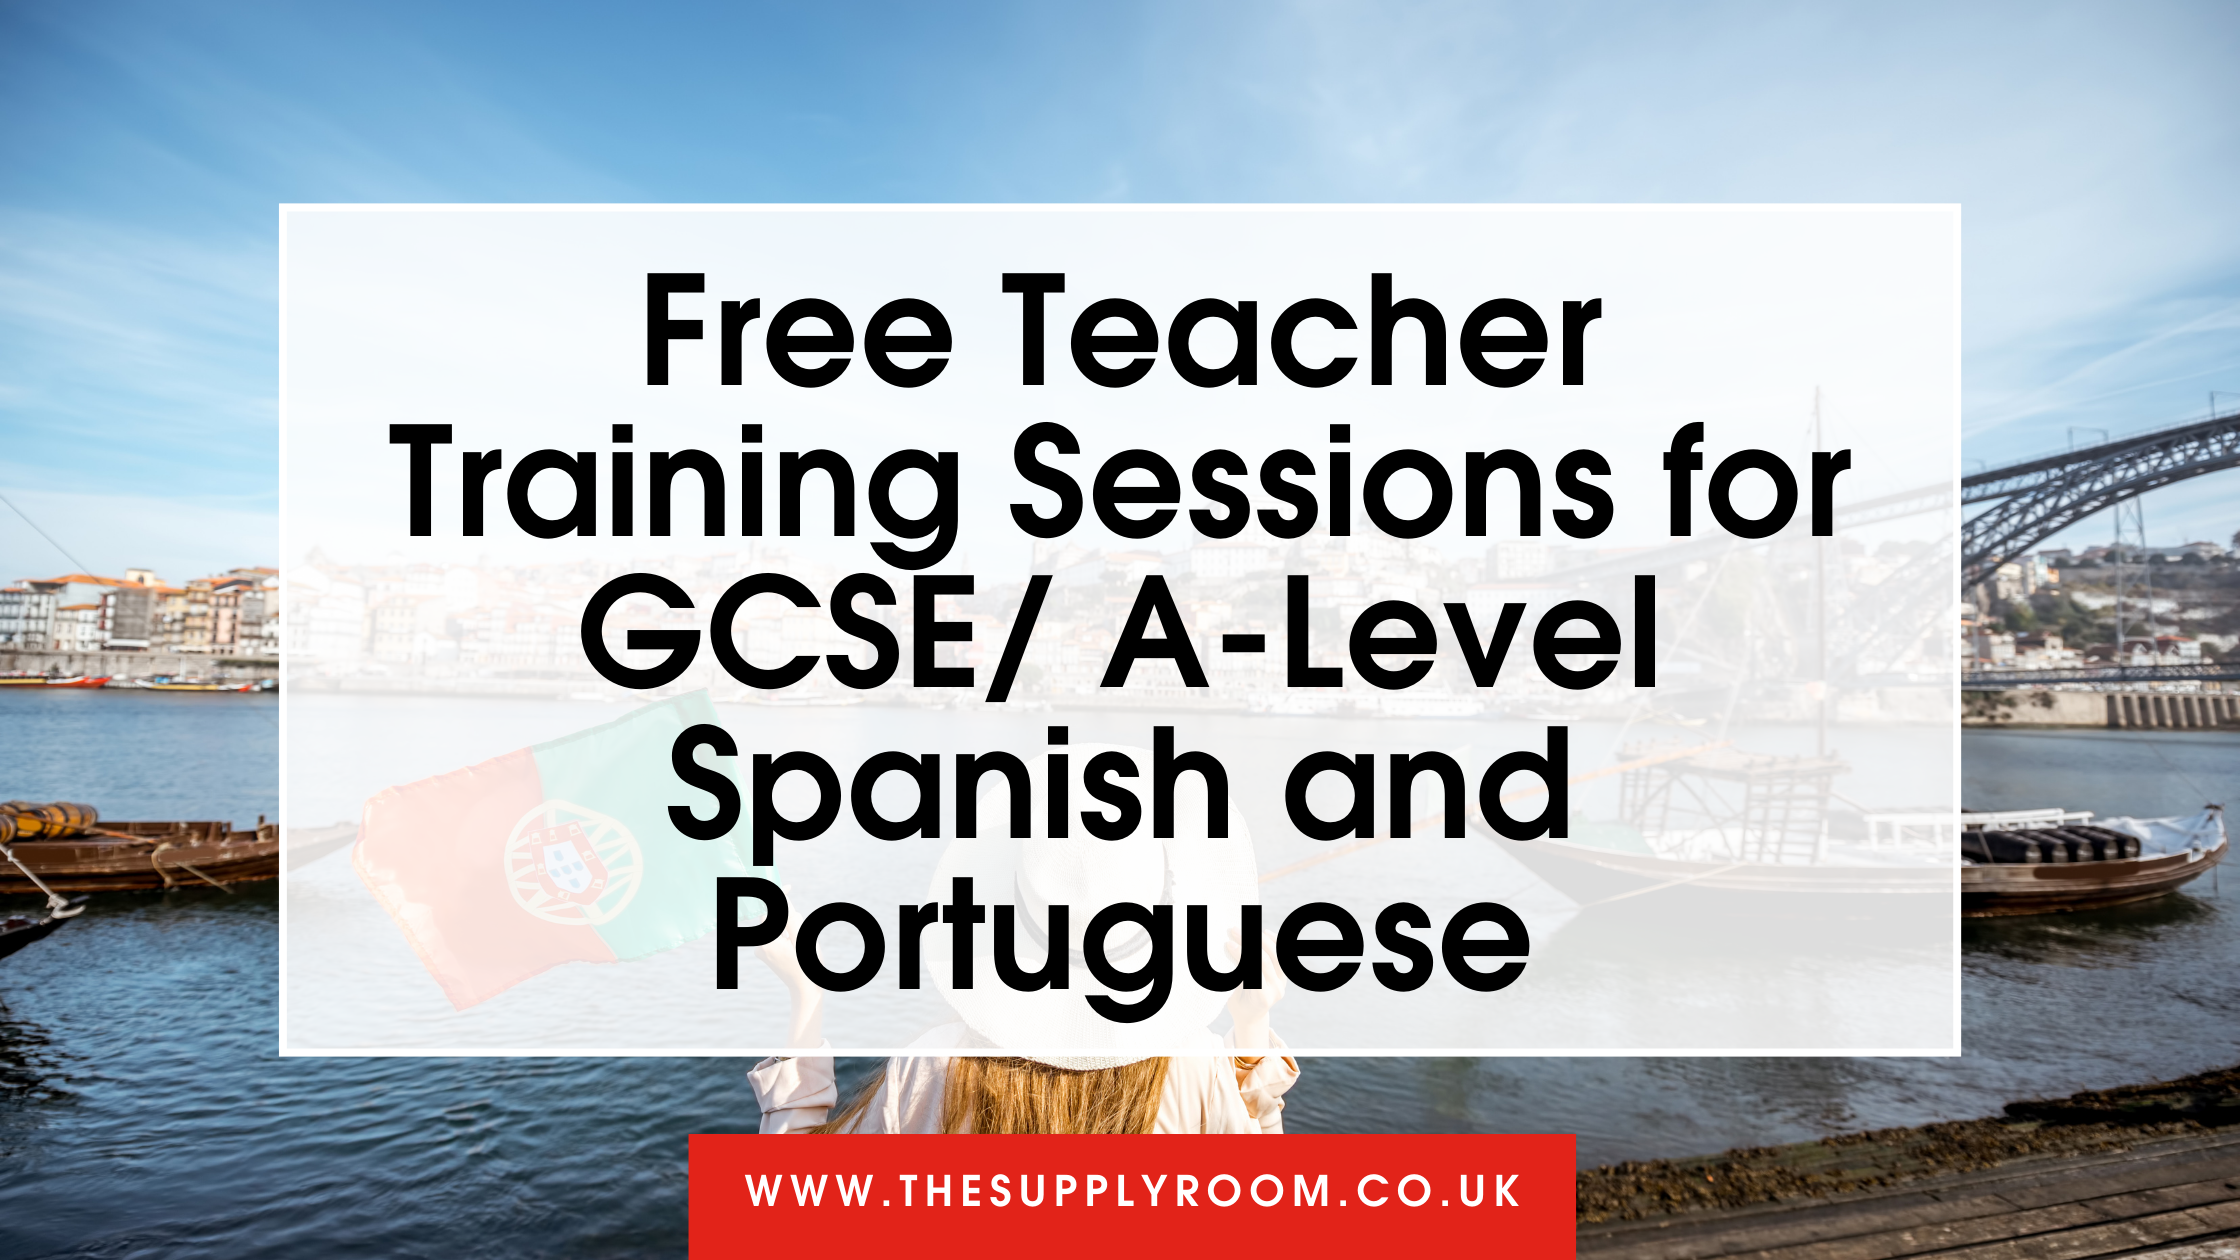 Free Teacher Training Sessions for GCSE/ A-Level Spanish and Portuguese